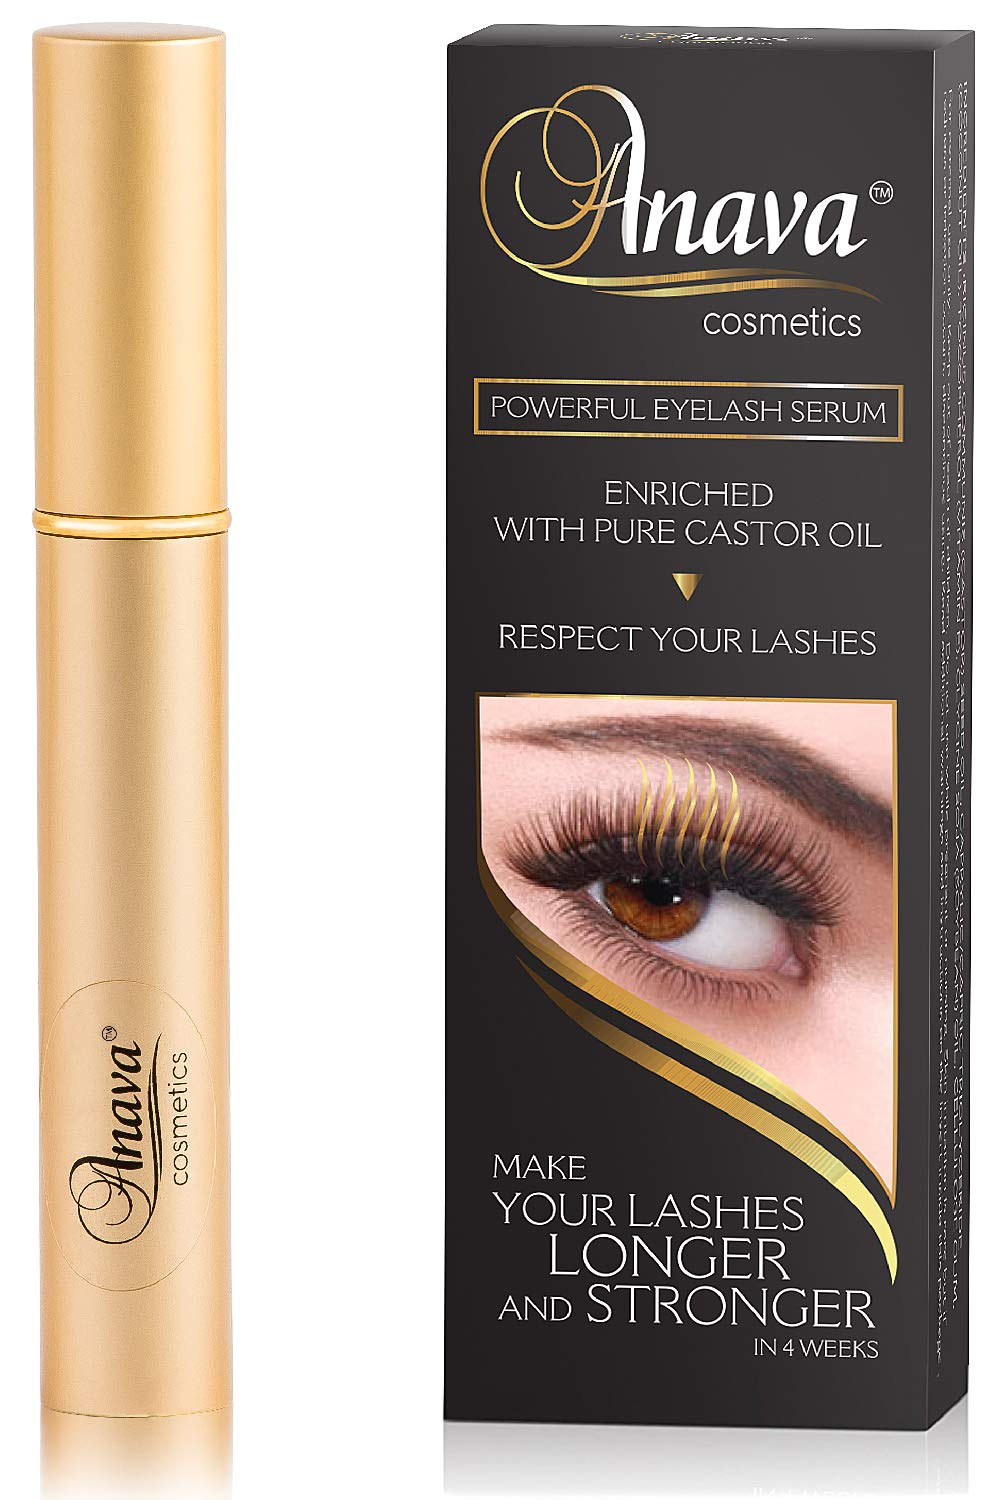 Anava Eyelash Growth Serum (6-Months Supply) All Natural Enhancing Treatment for Falling, Thinning Lashes, Nourishing & Thickening Conditioner - Healthy, Thick, Long & Strong Lashes in 4-8 Weeks